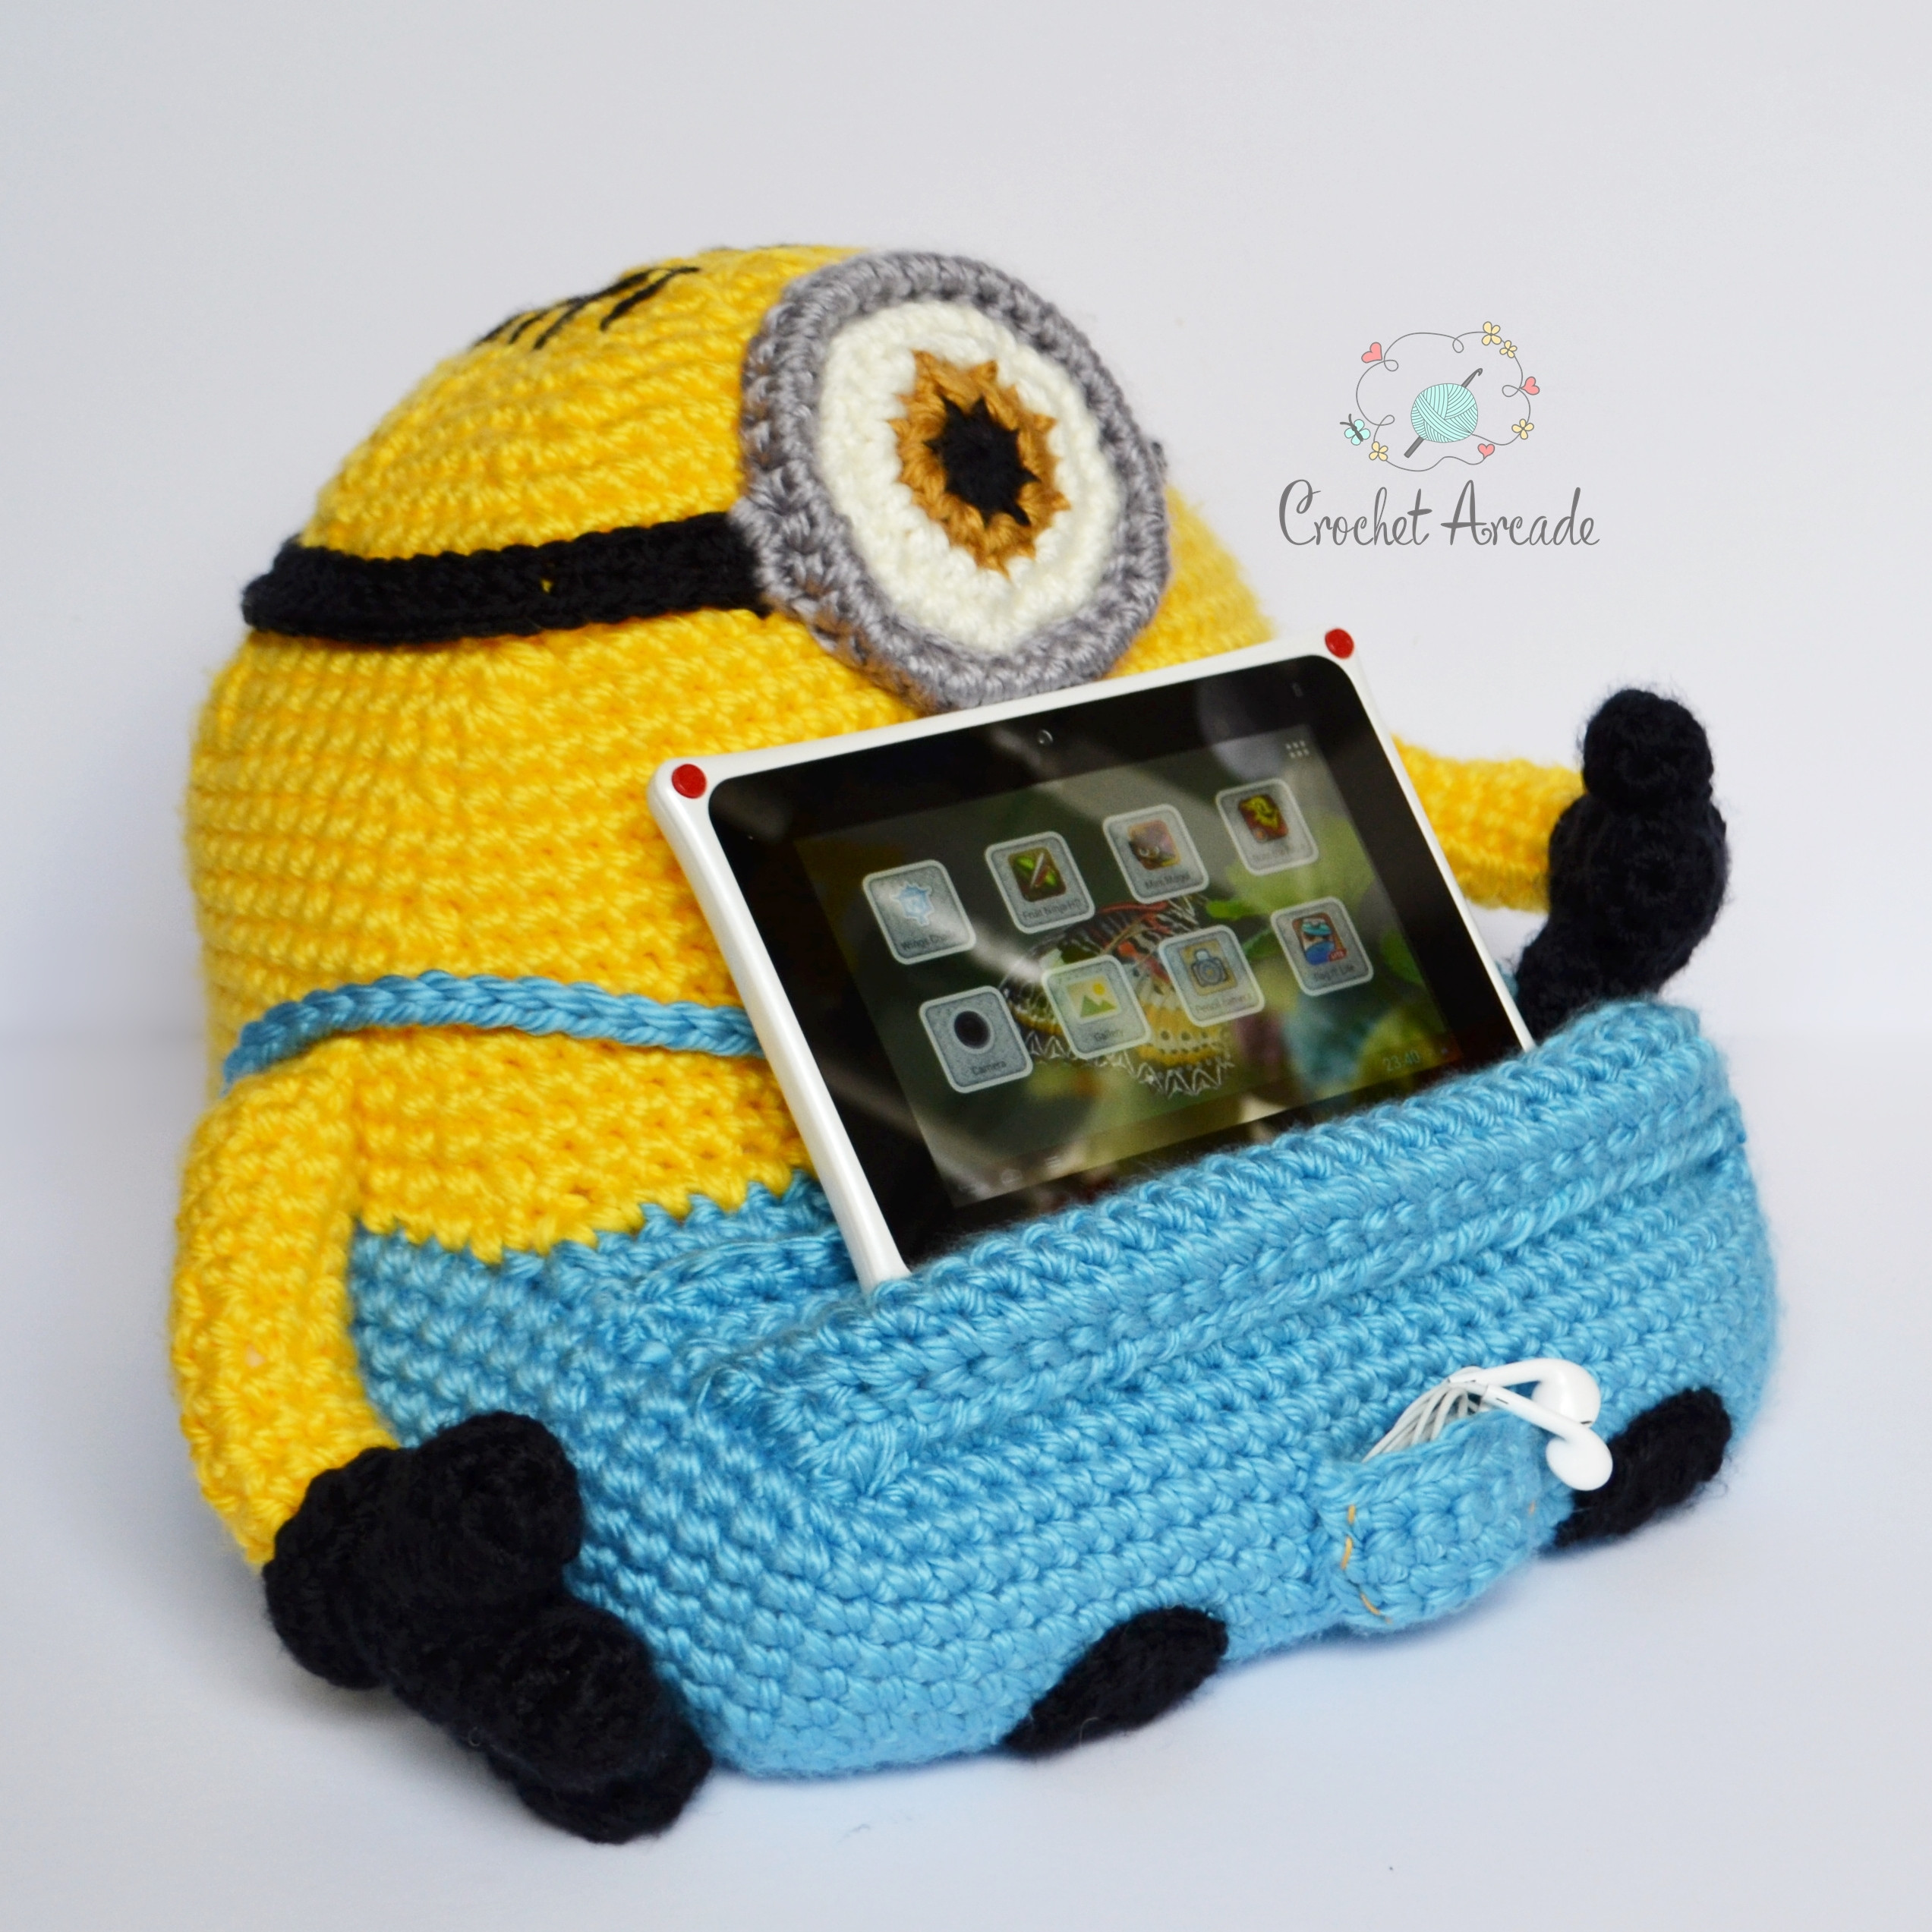 Crochet Business Name Ideas Inspirational Stuart Book Tablet Holder Crochet Pattern – Crochet Arcade Of Wonderful 48 Images Crochet Business Name Ideas